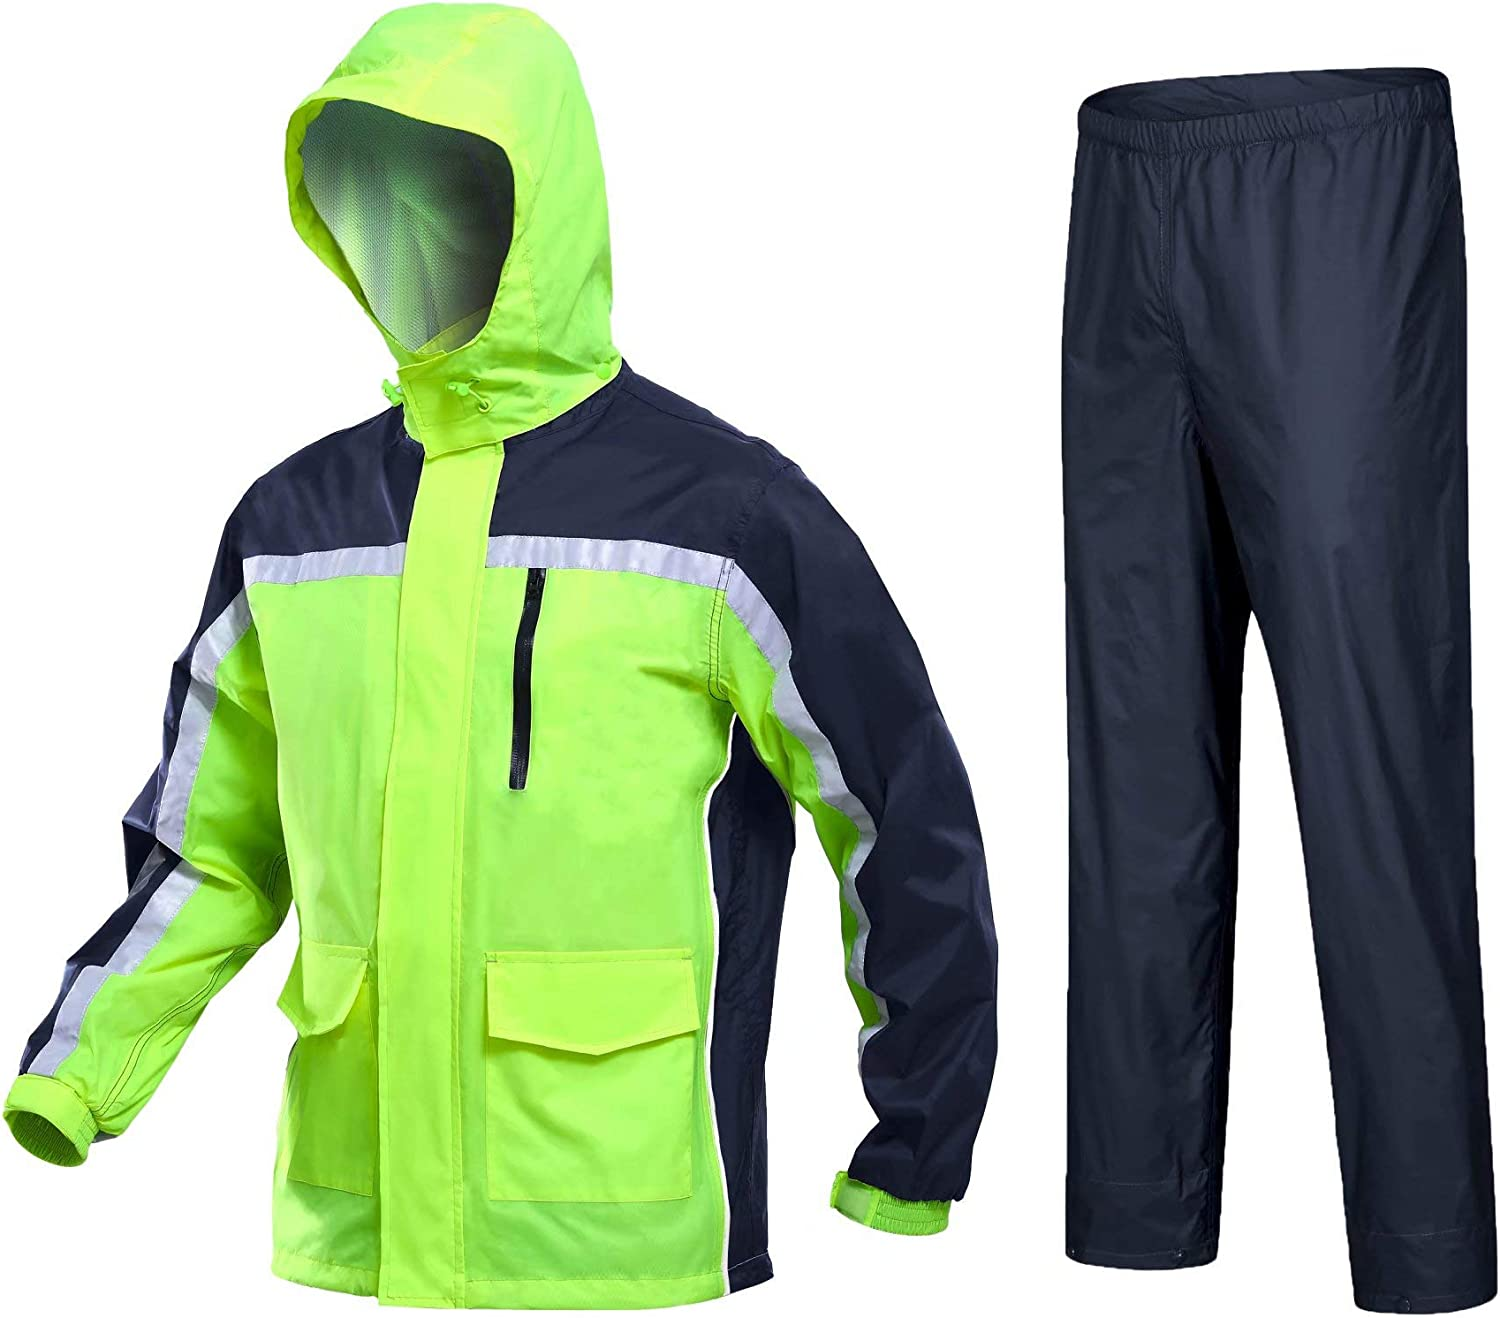 MAGCOMSEN SEAL limited product Portland Mall Men's Rain Suits Waterproof Raincoats Hiker Hooded wit